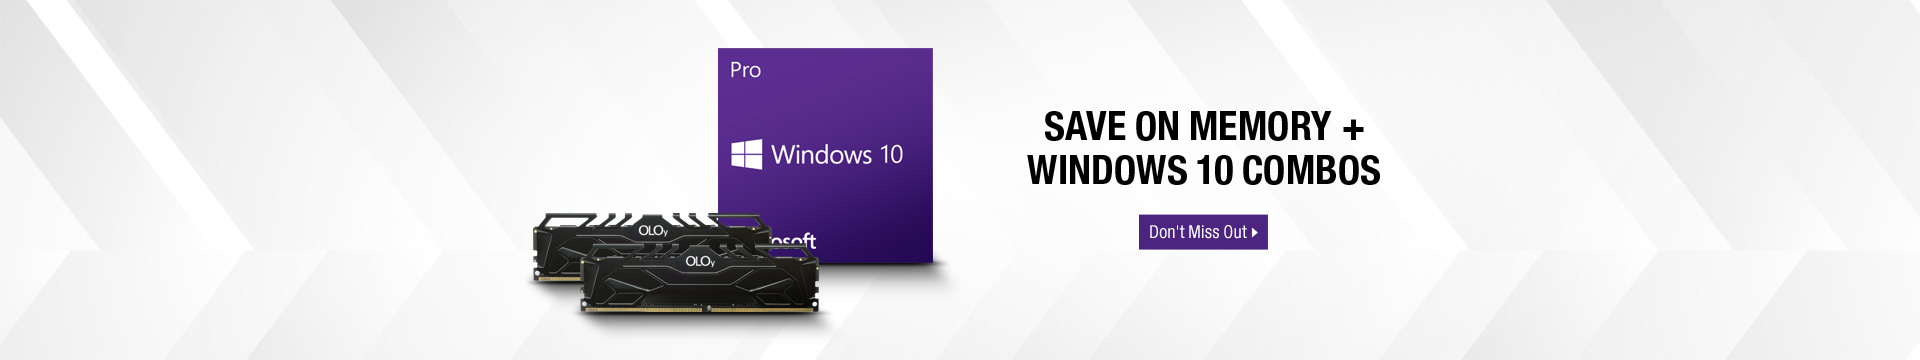 Save on Memory + Windows 10 Combos